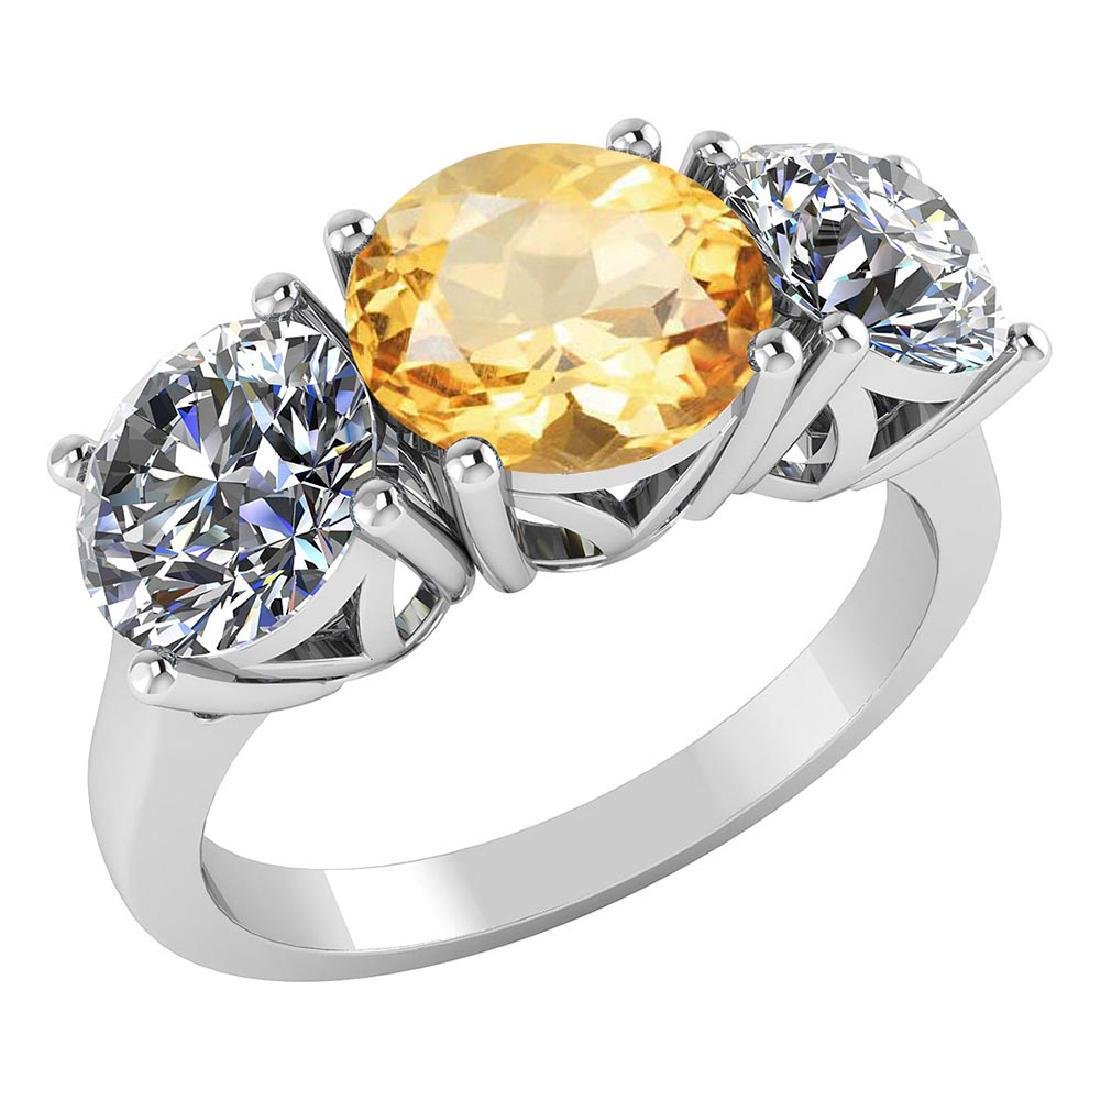 Certified 1.80 CTW Genuine Citrine And Diamond 14K Whit